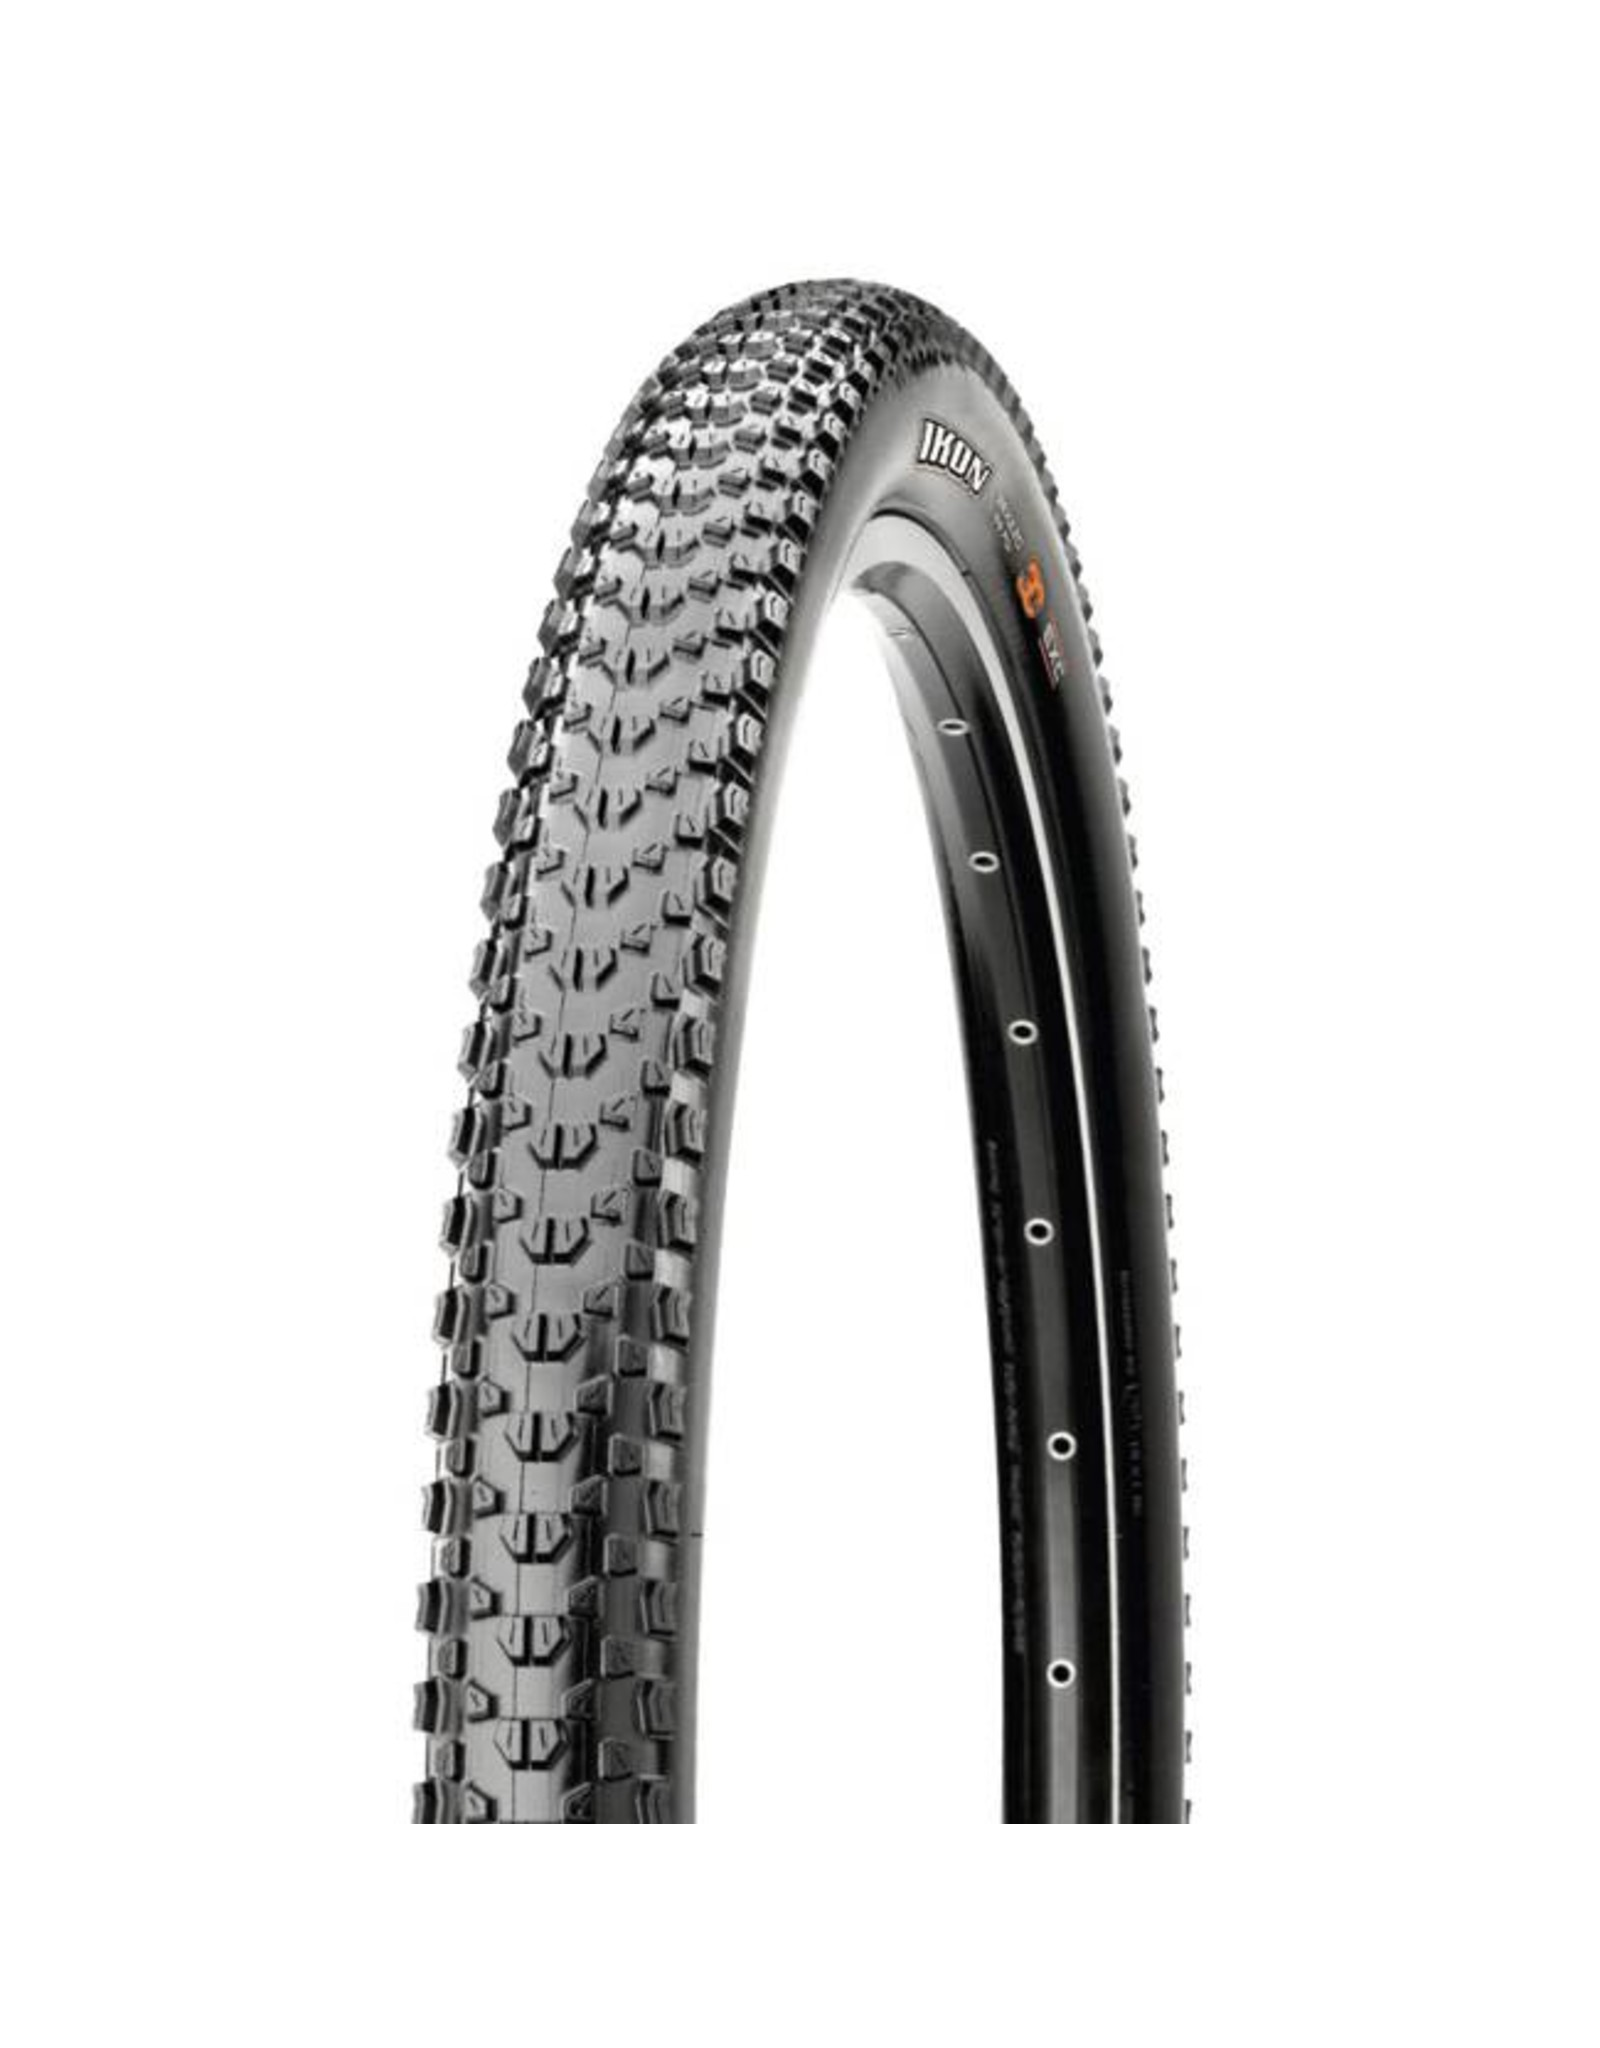 "Maxxis Maxxis Ikon Tire: 27.5 x 2.20"", Folding, 120tpi, 3C, EXO, Tubeless Ready, Black"